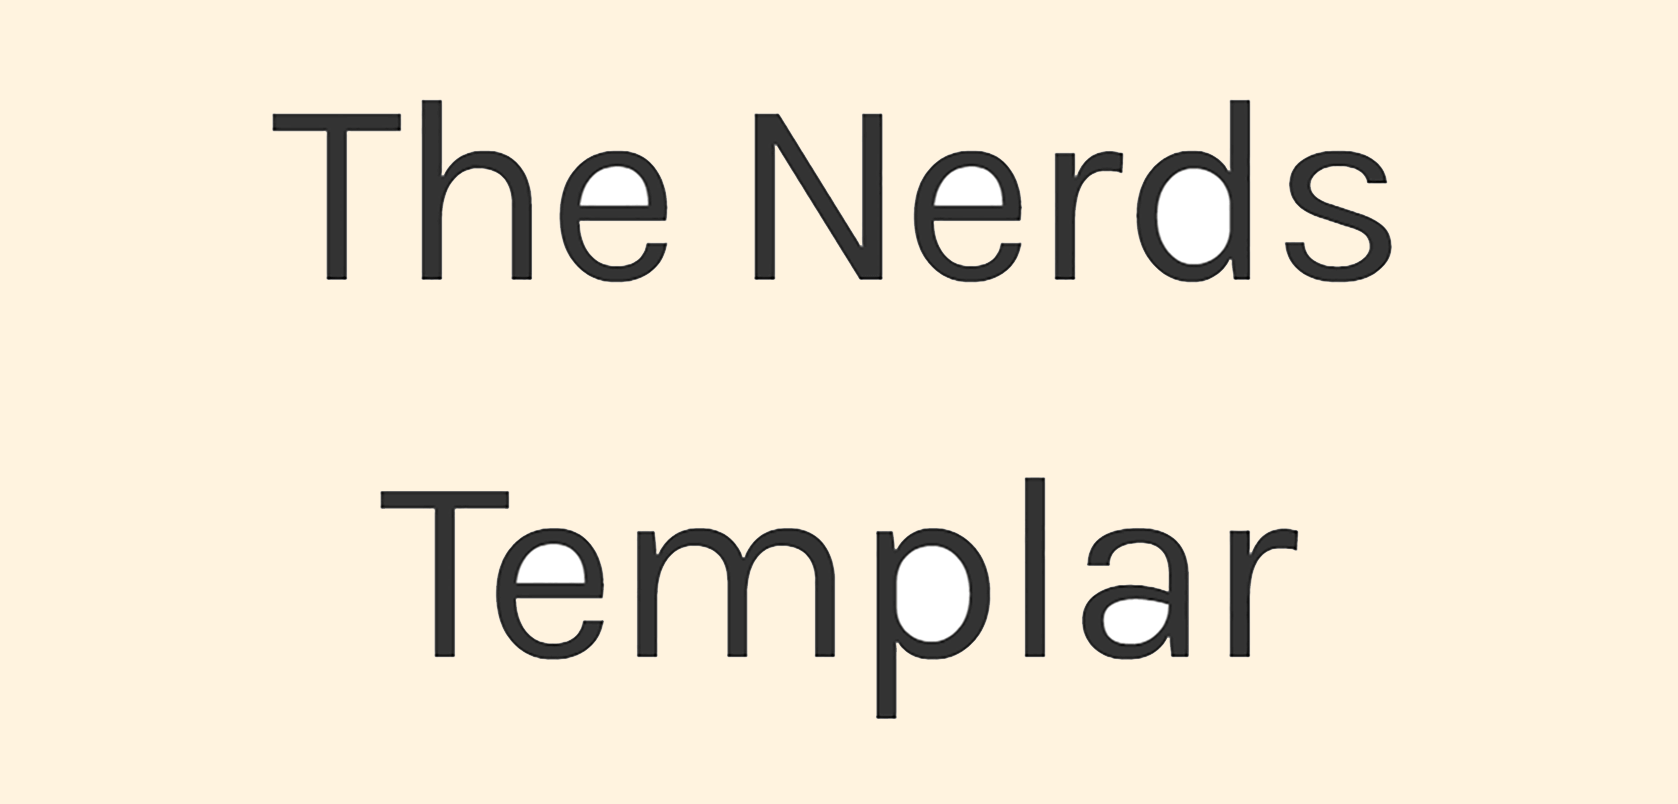 Hold Me the movie film review from the Nerds Templar by Ken Murray